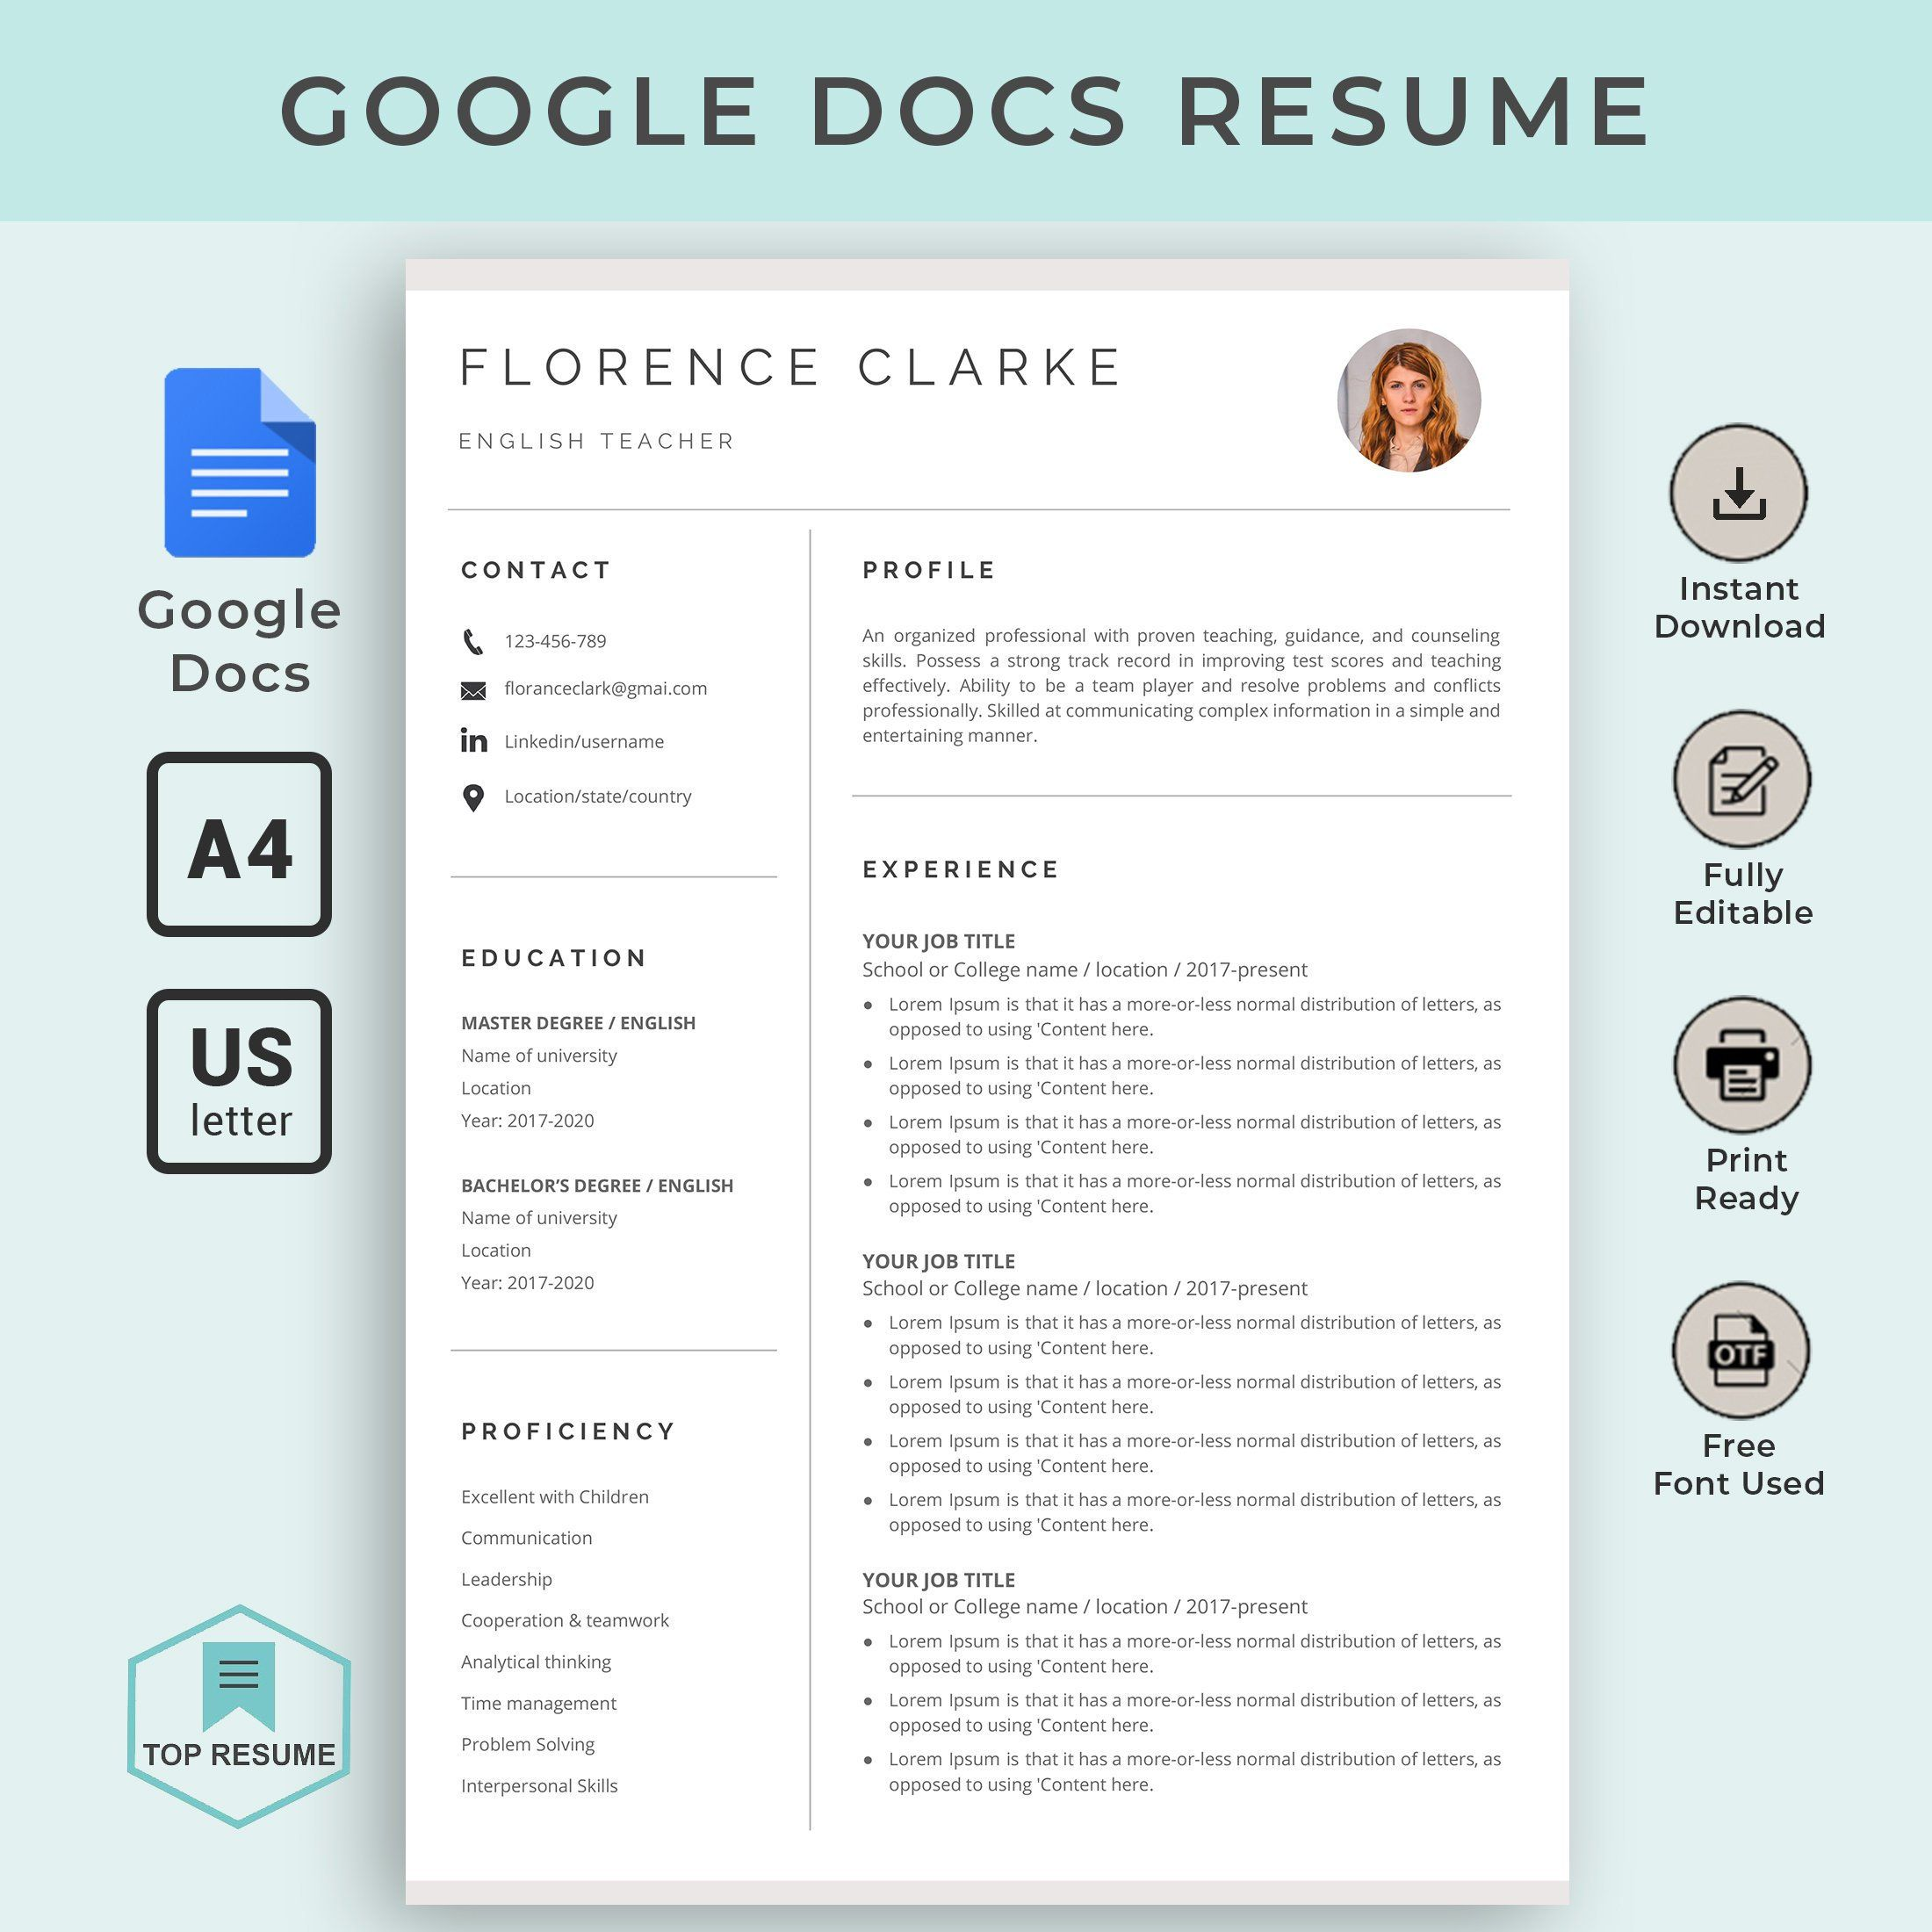 Google Docs Resume Google Docs Resume Template Google Docs Template Instant Downlo Downloadable Resume Template Teacher Resume Template Resume Template Word Press enter on your keyboard, and then select close. google docs resume google docs resume